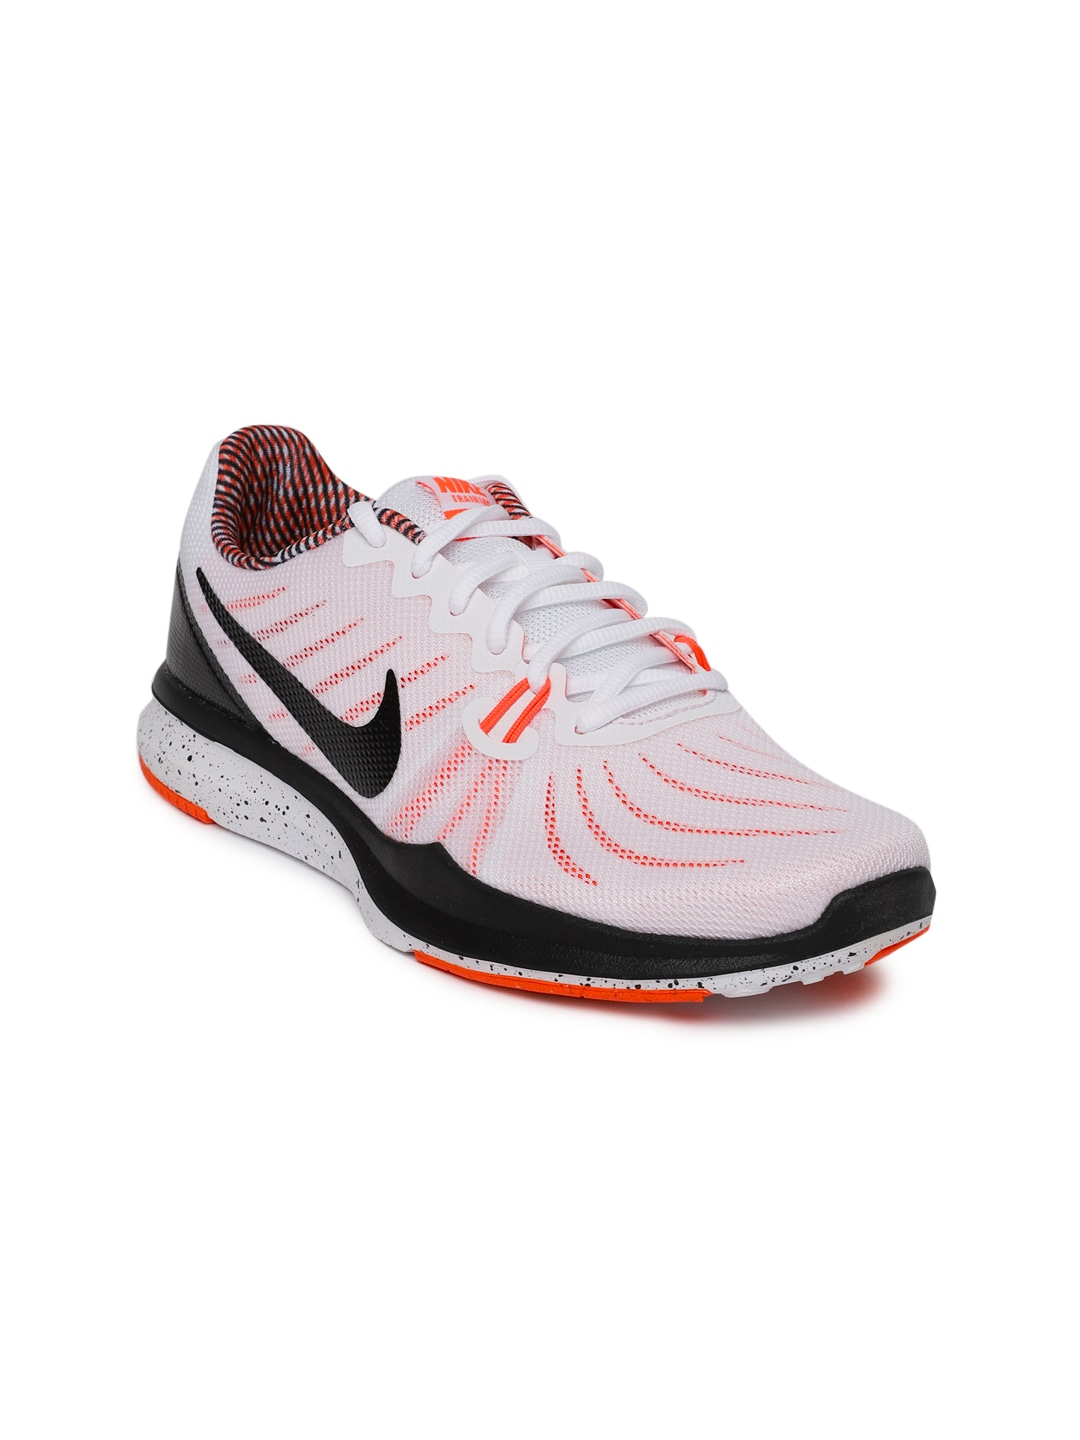 db7a84d927eb Nike Training Shoes - Buy Nike Training Shoes For Men   Women in India